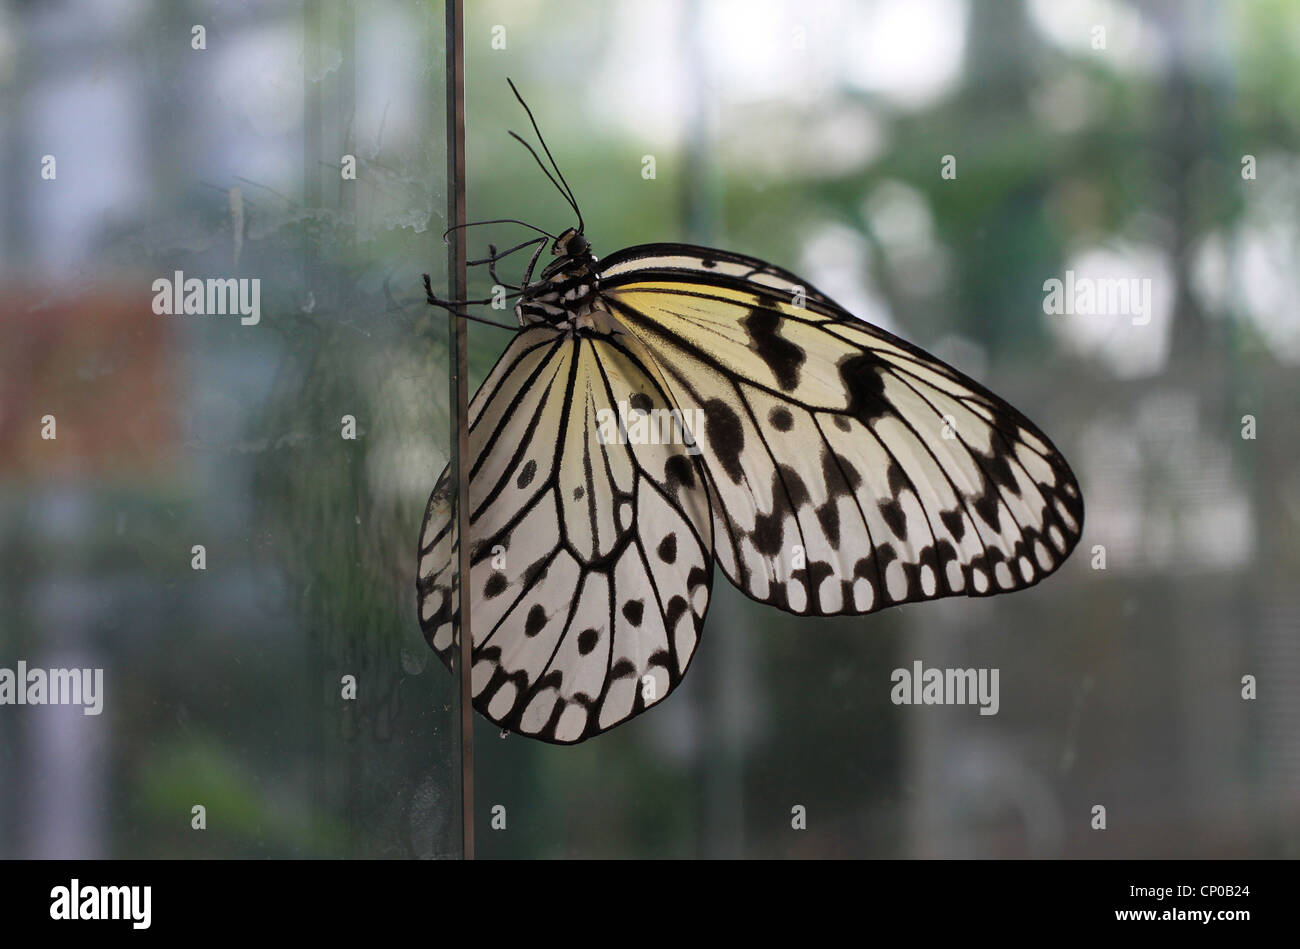 White Tree Nymph Butterfly (idea leuconoe) also known as Paper Kite or Rice Paper lingering on a glass sheet. - Stock Image